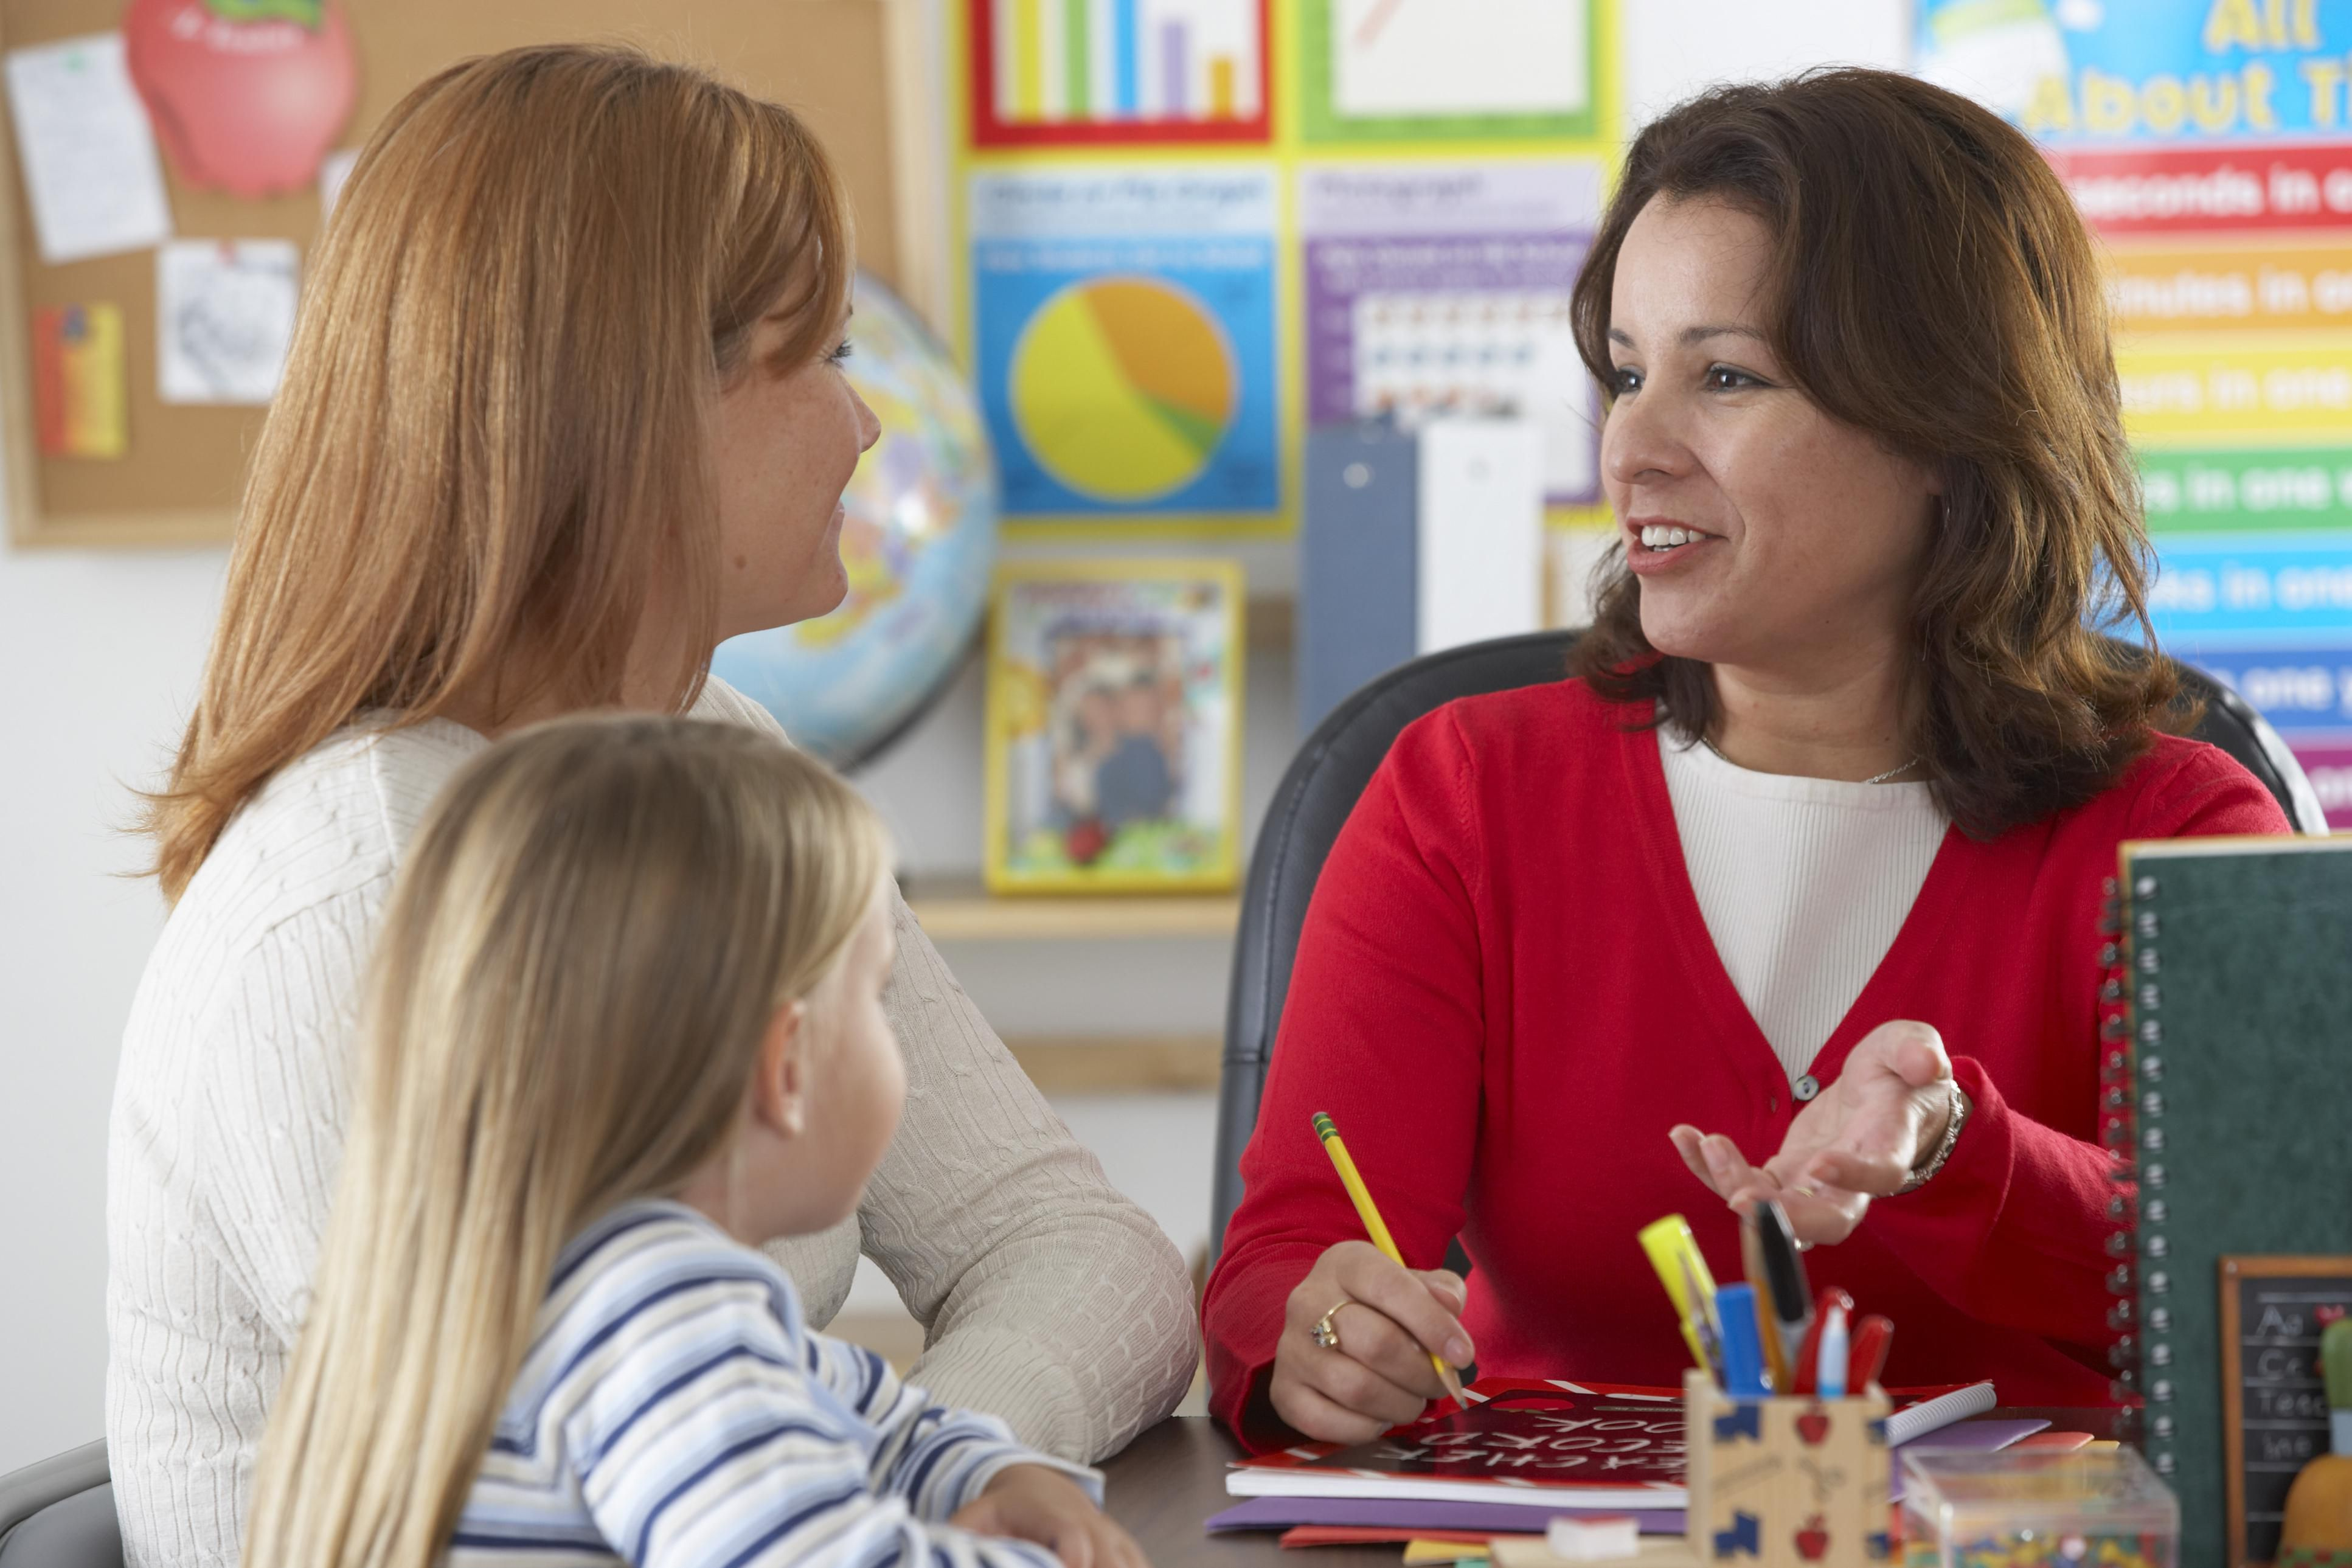 Interview Questions to Ask Preschool Teachers